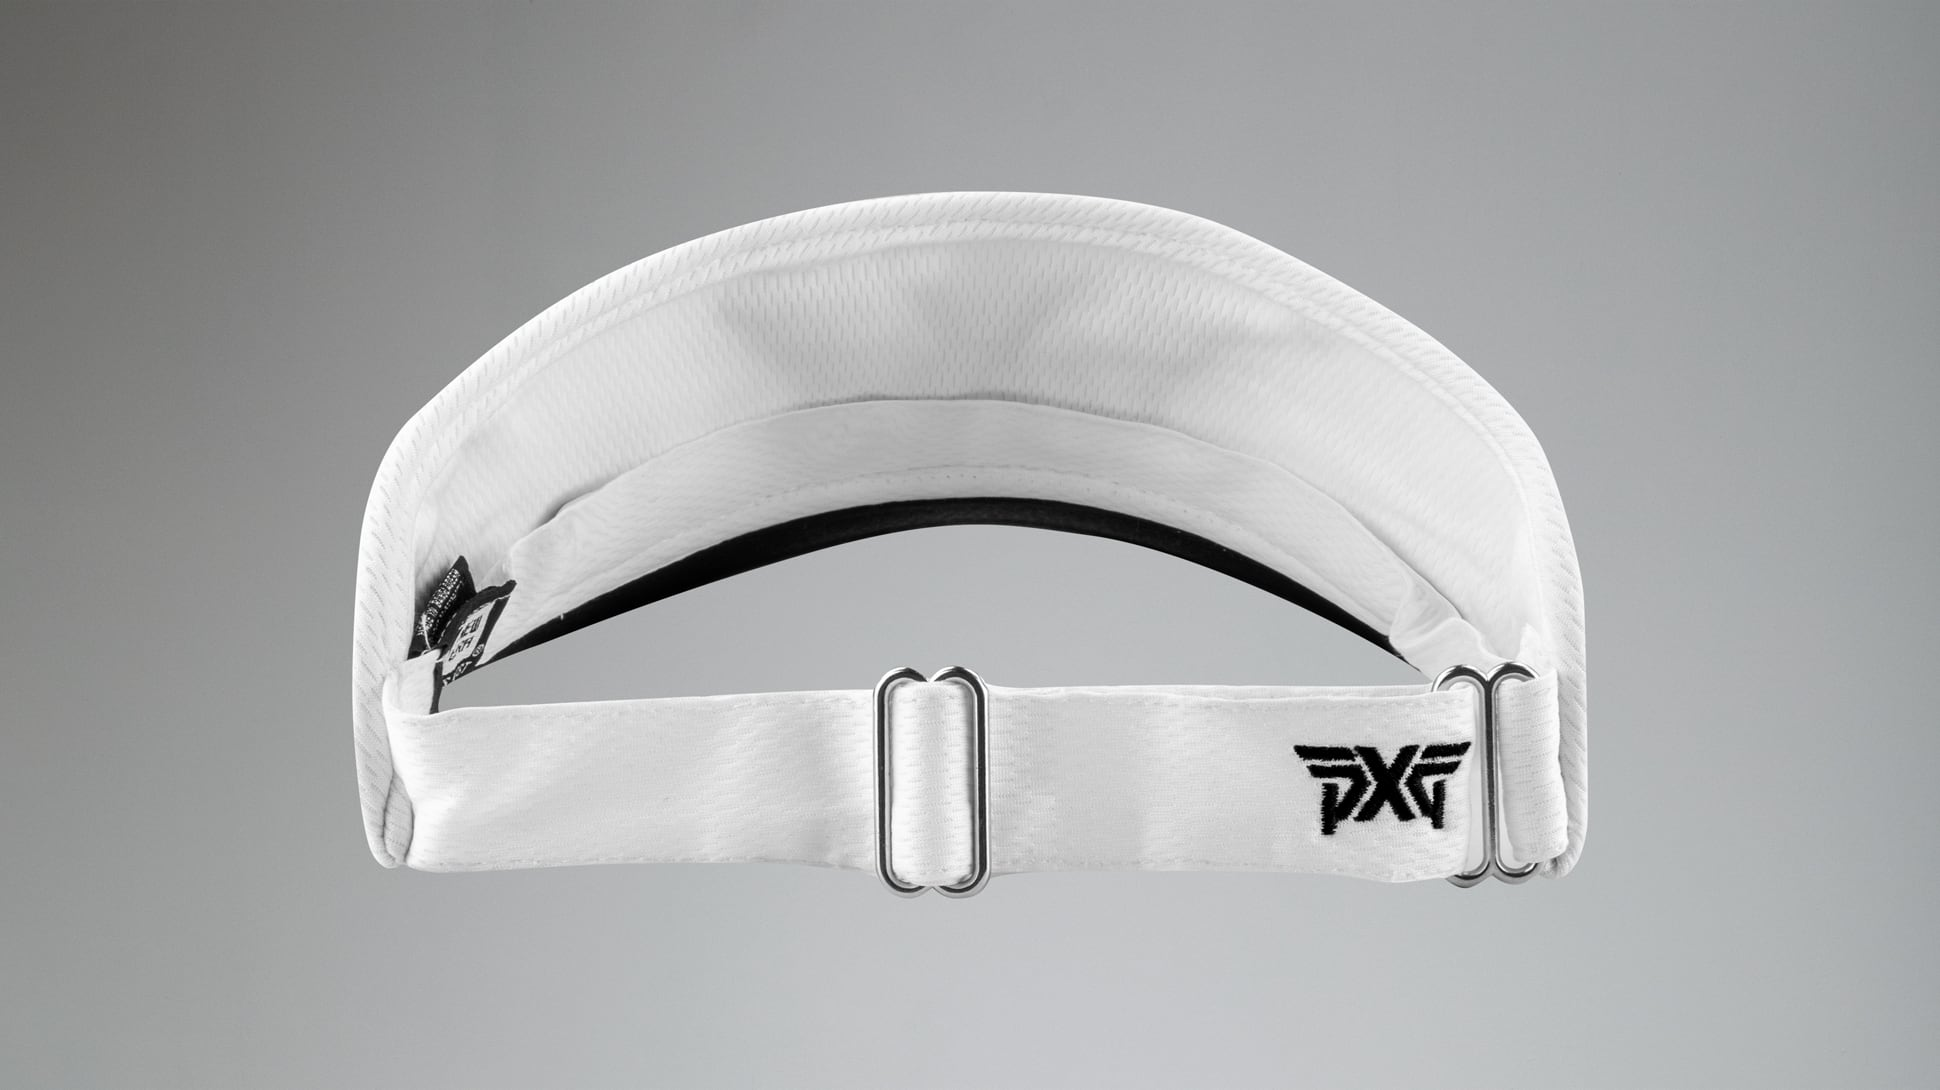 Performance Line Tour Visor Image 3